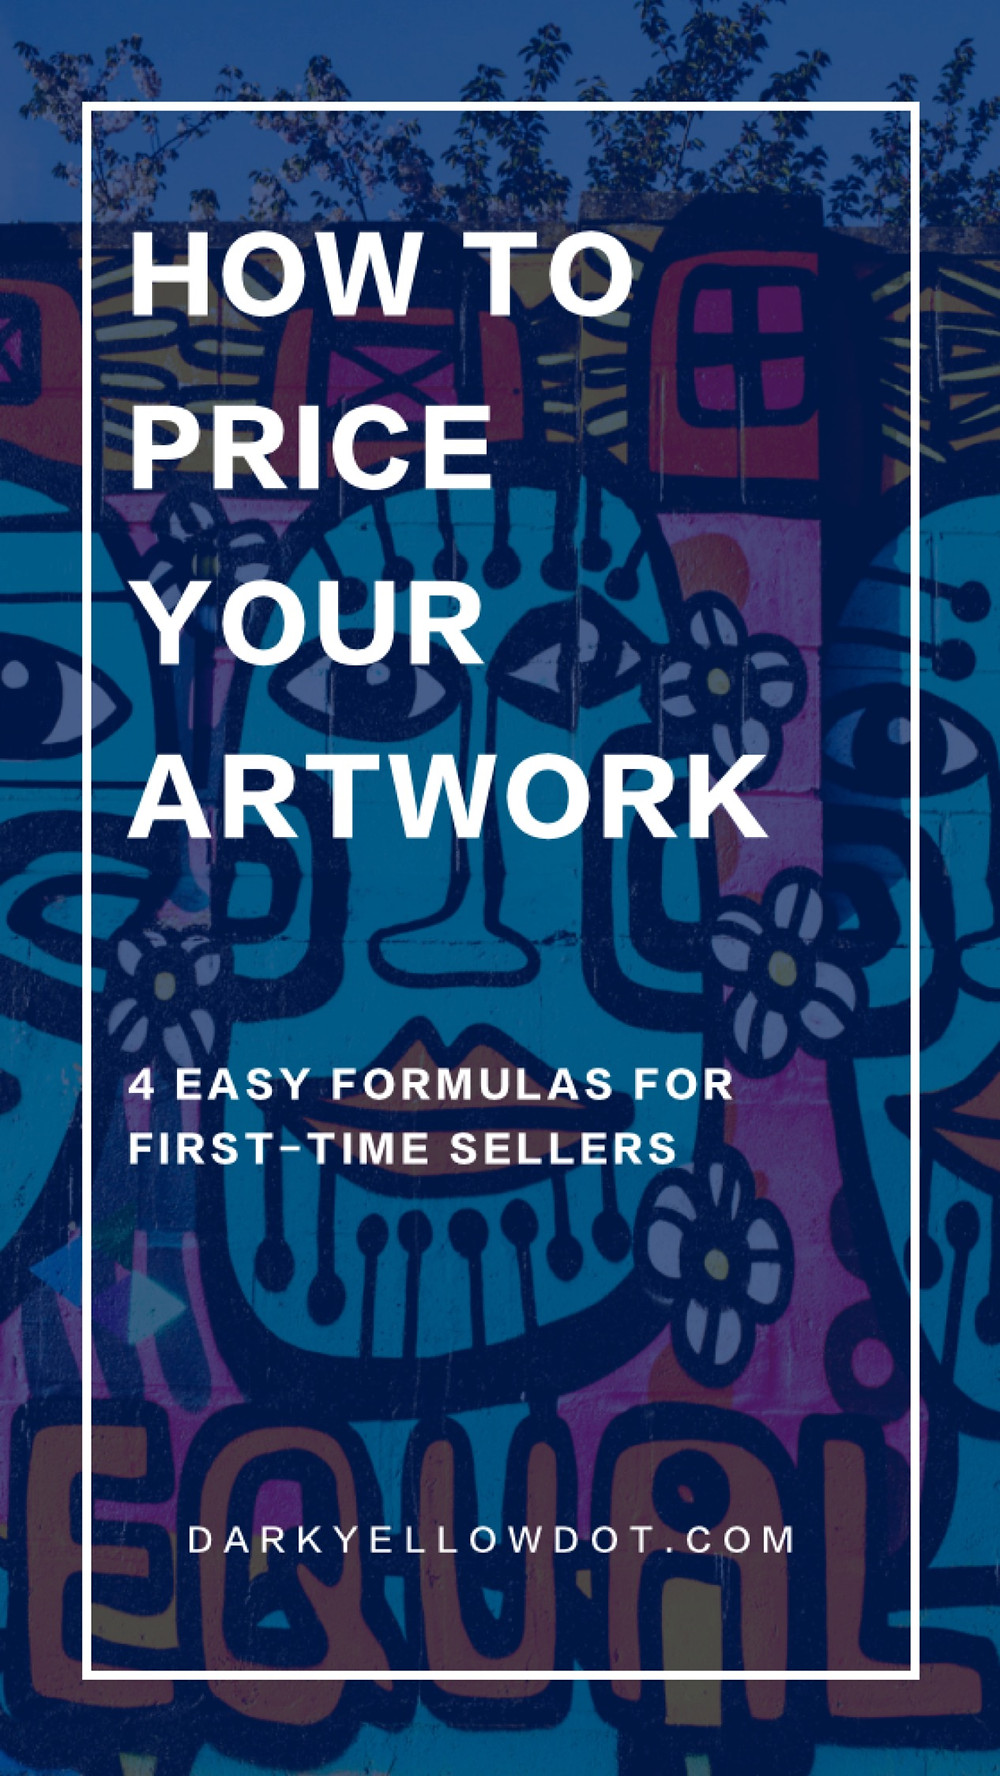 How to price your artwork, a great article for new artists and creatives who are just starting to sell their artwork for the first time. - Dark Yellow Dot